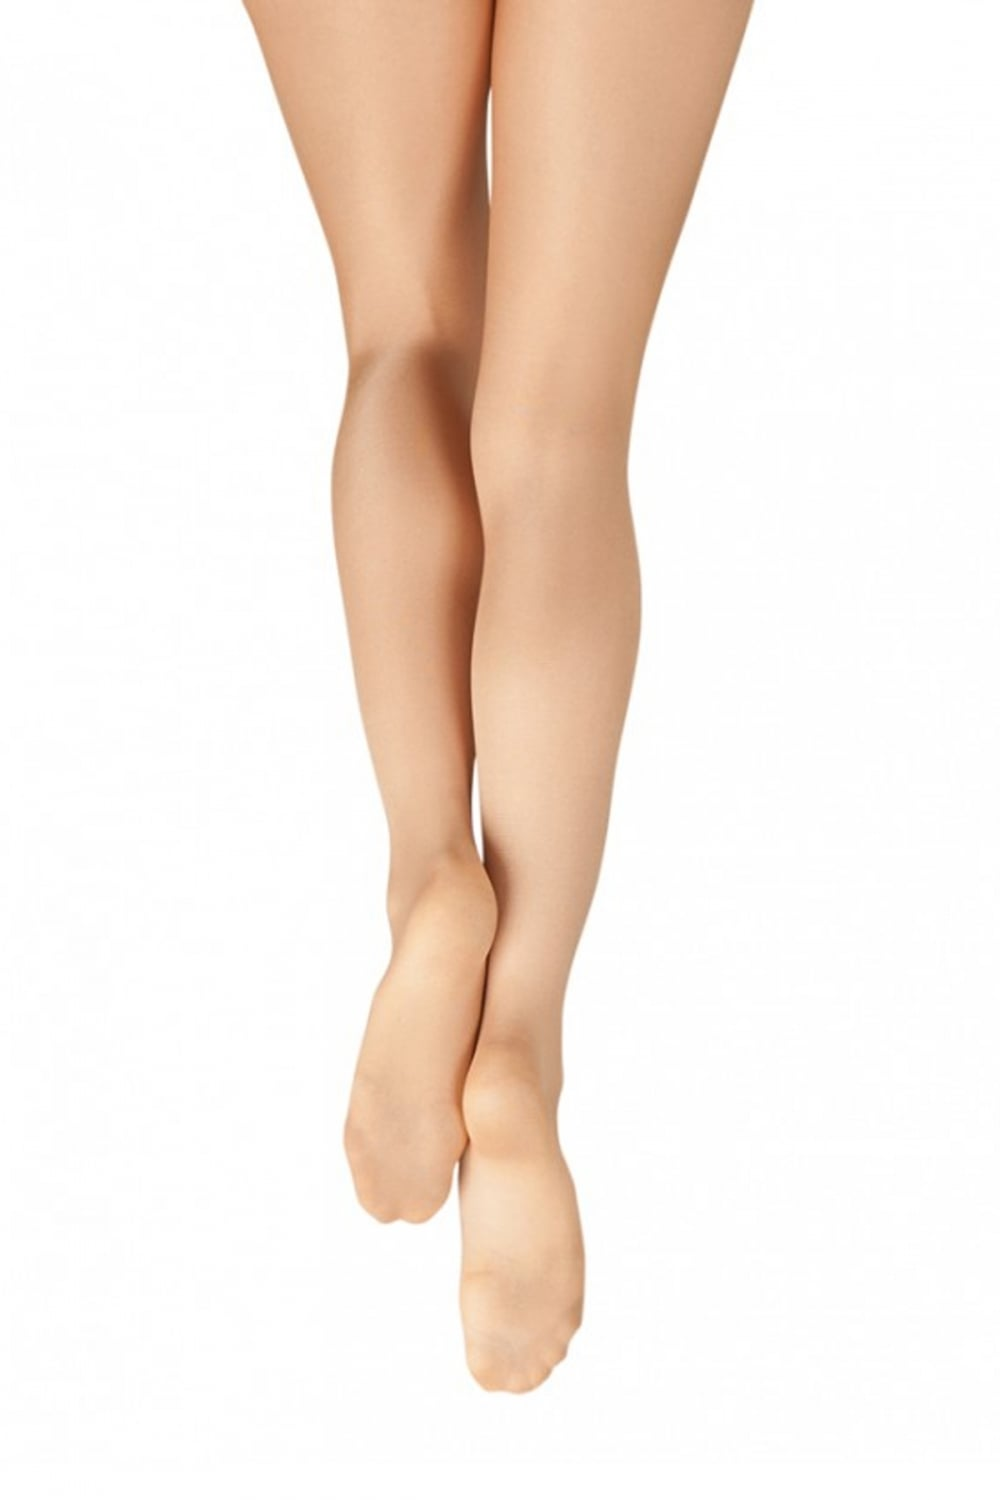 GIRLS /& LADIES TOAST SHIMMER TIGHTS SILKY SHIMMER FOOTED TIGHTS TOAST